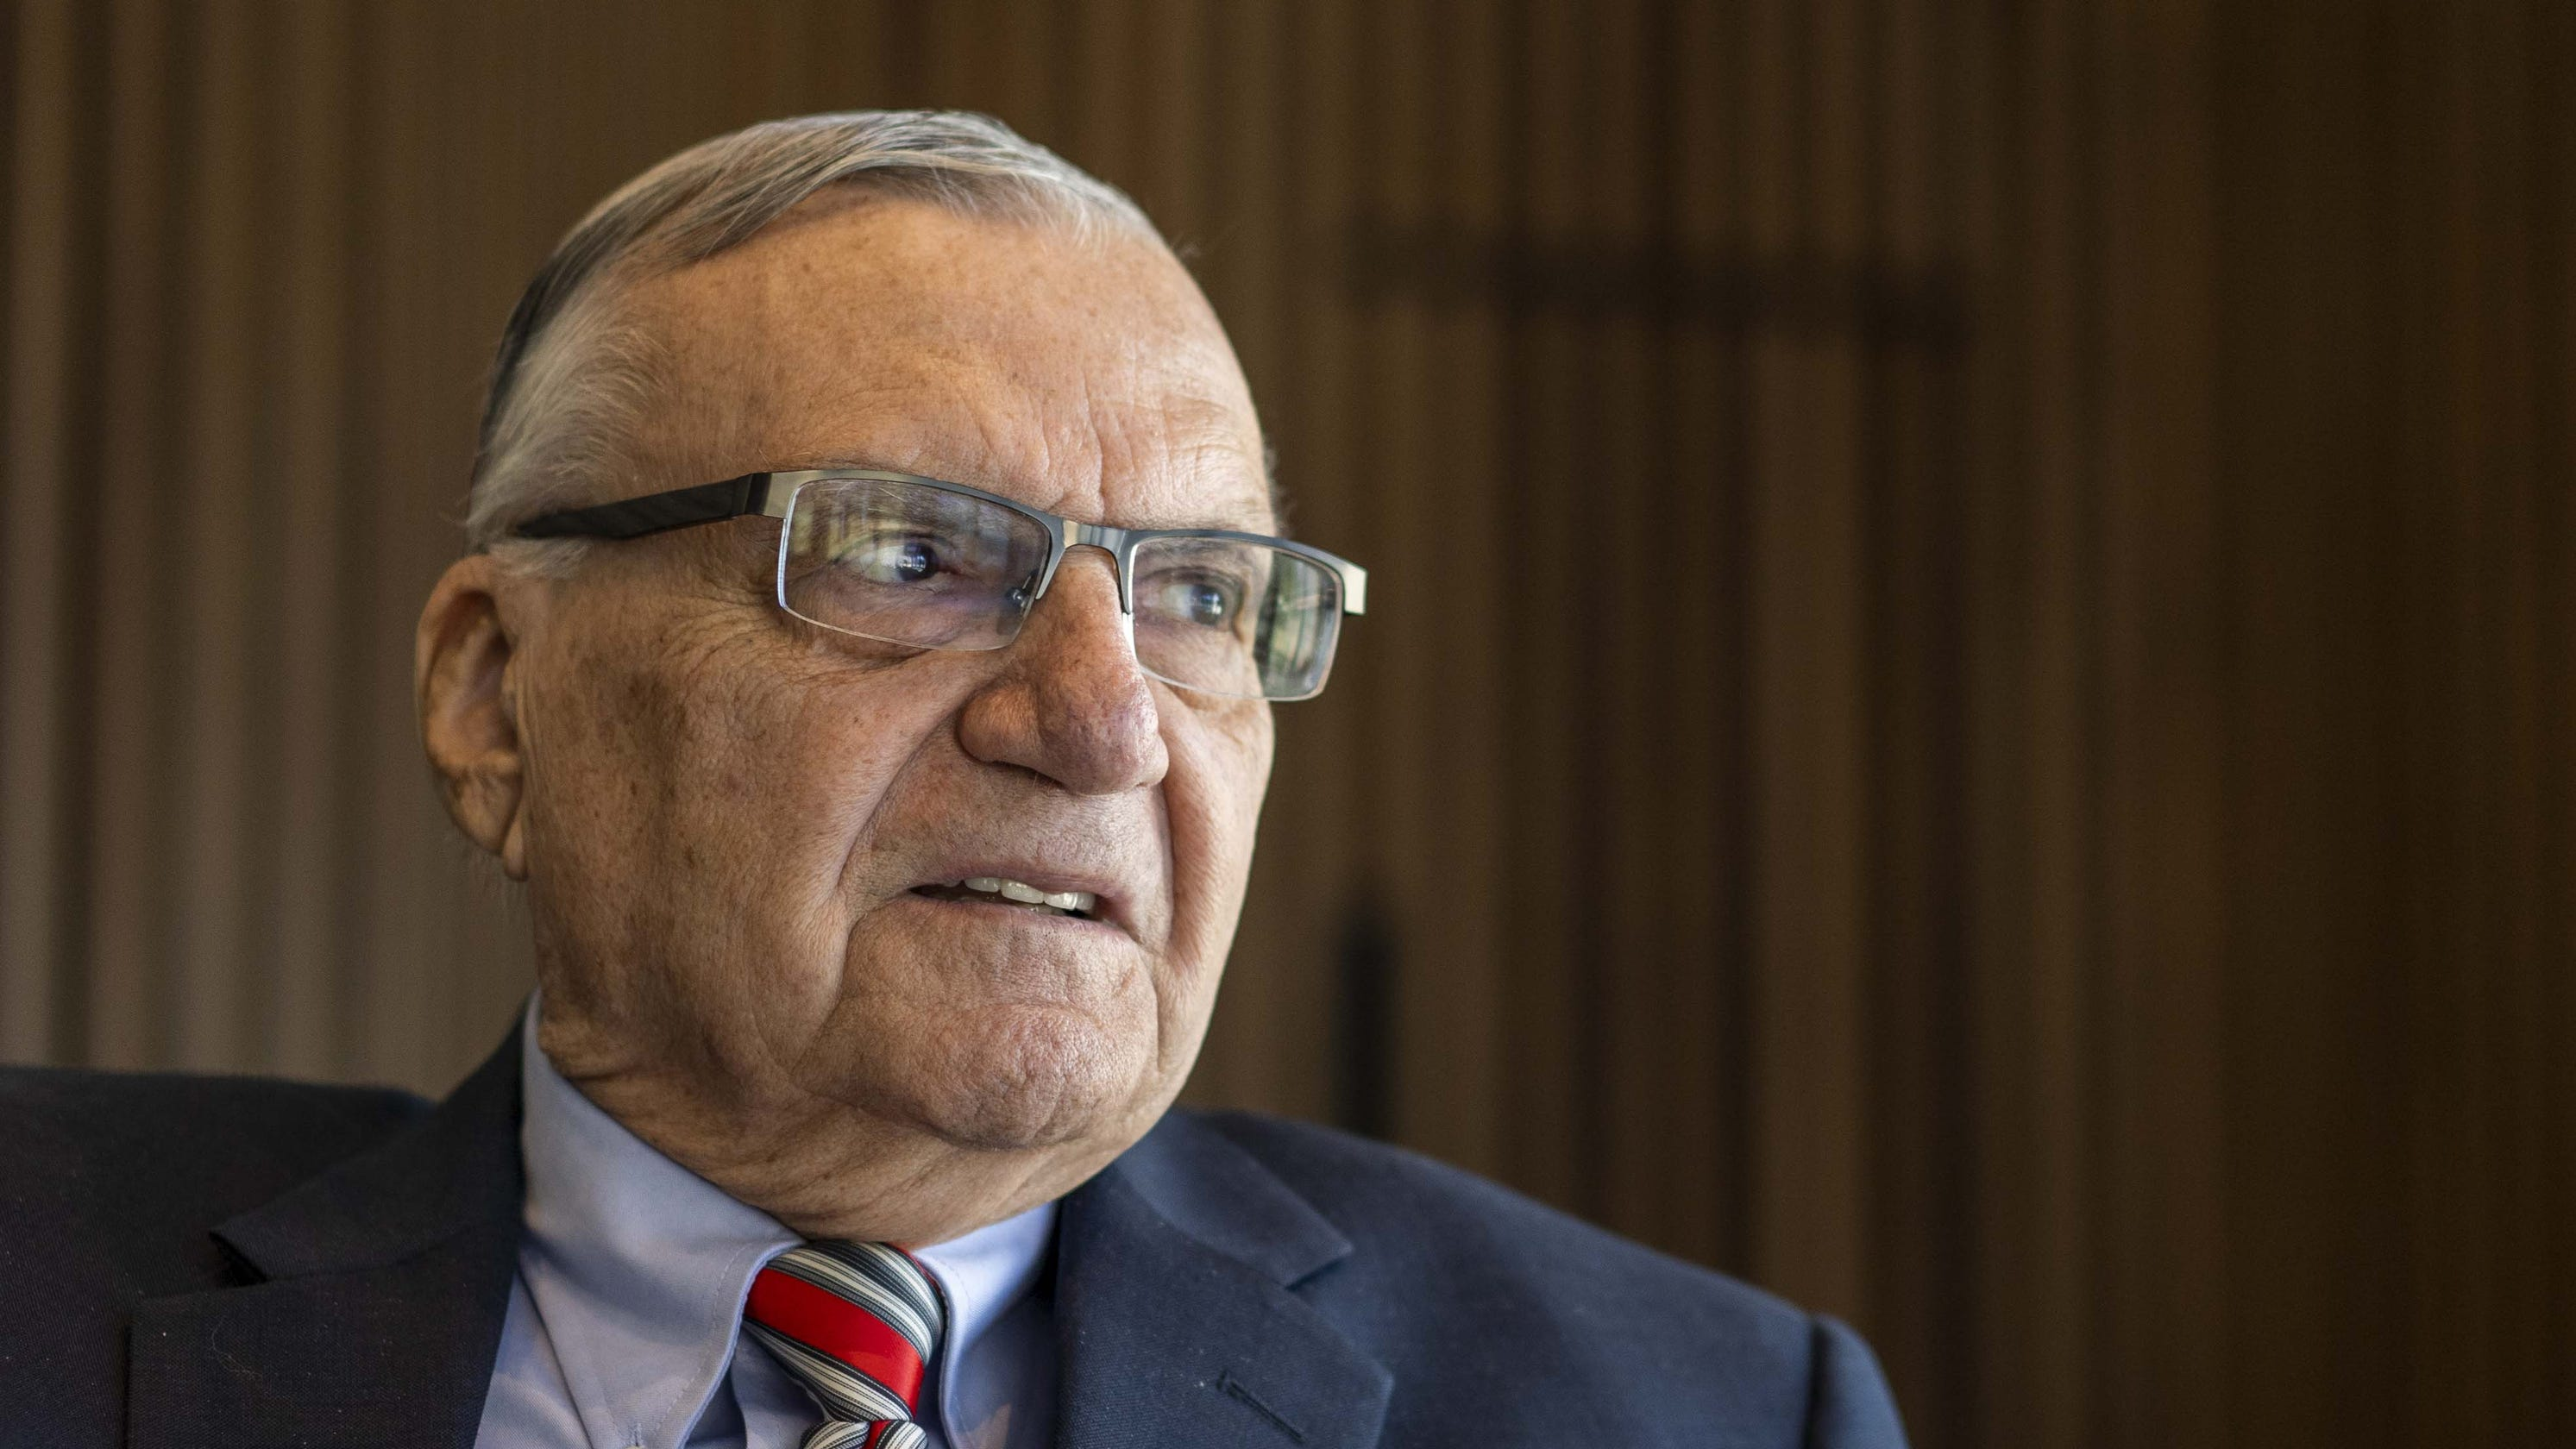 Arpaio was never technically convicted of contempt of court, 9th Circuit rules